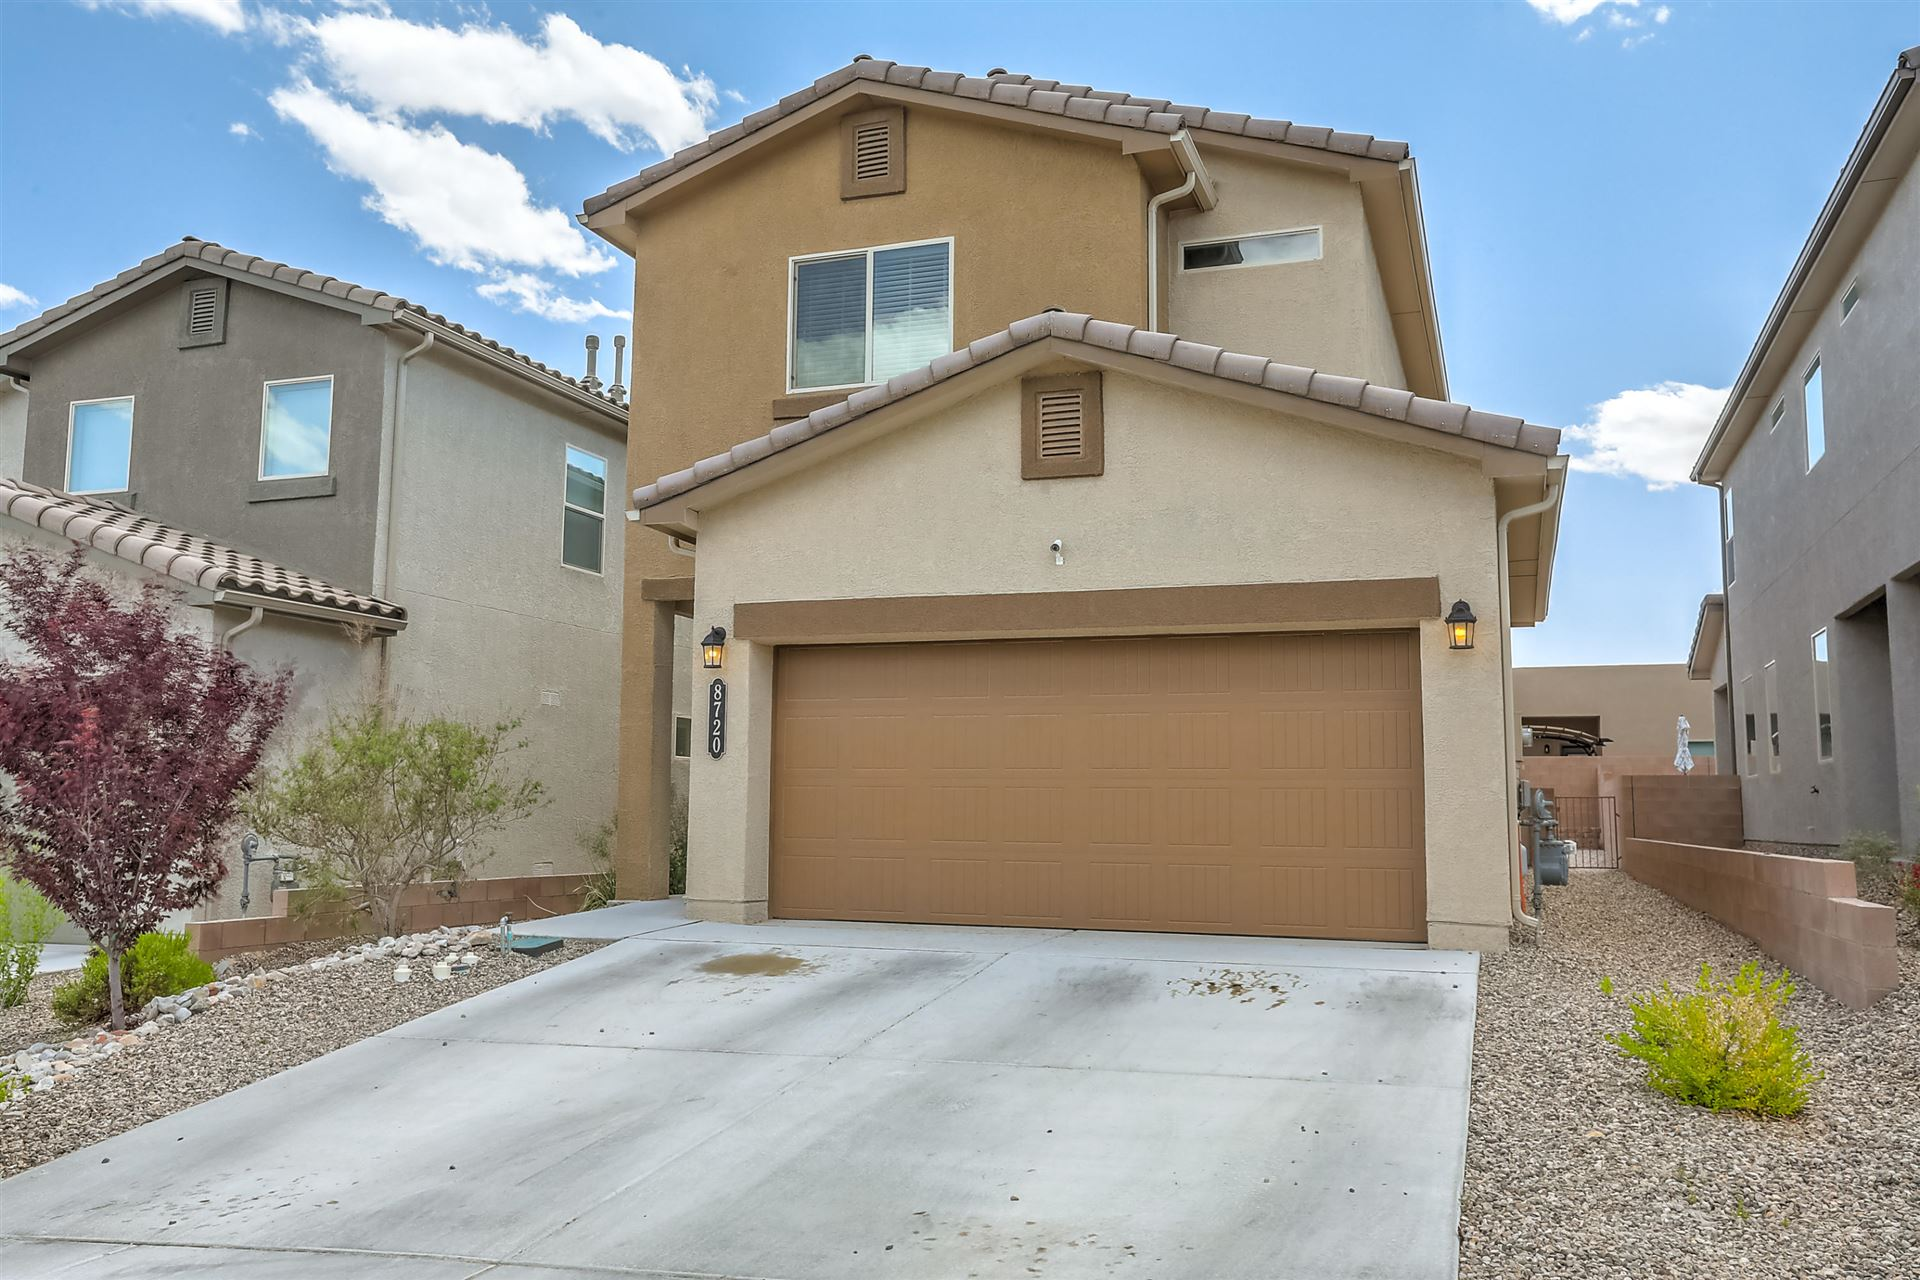 8720 WARM WIND Place NW, Albuquerque, NM 87120 - MLS#: 991893